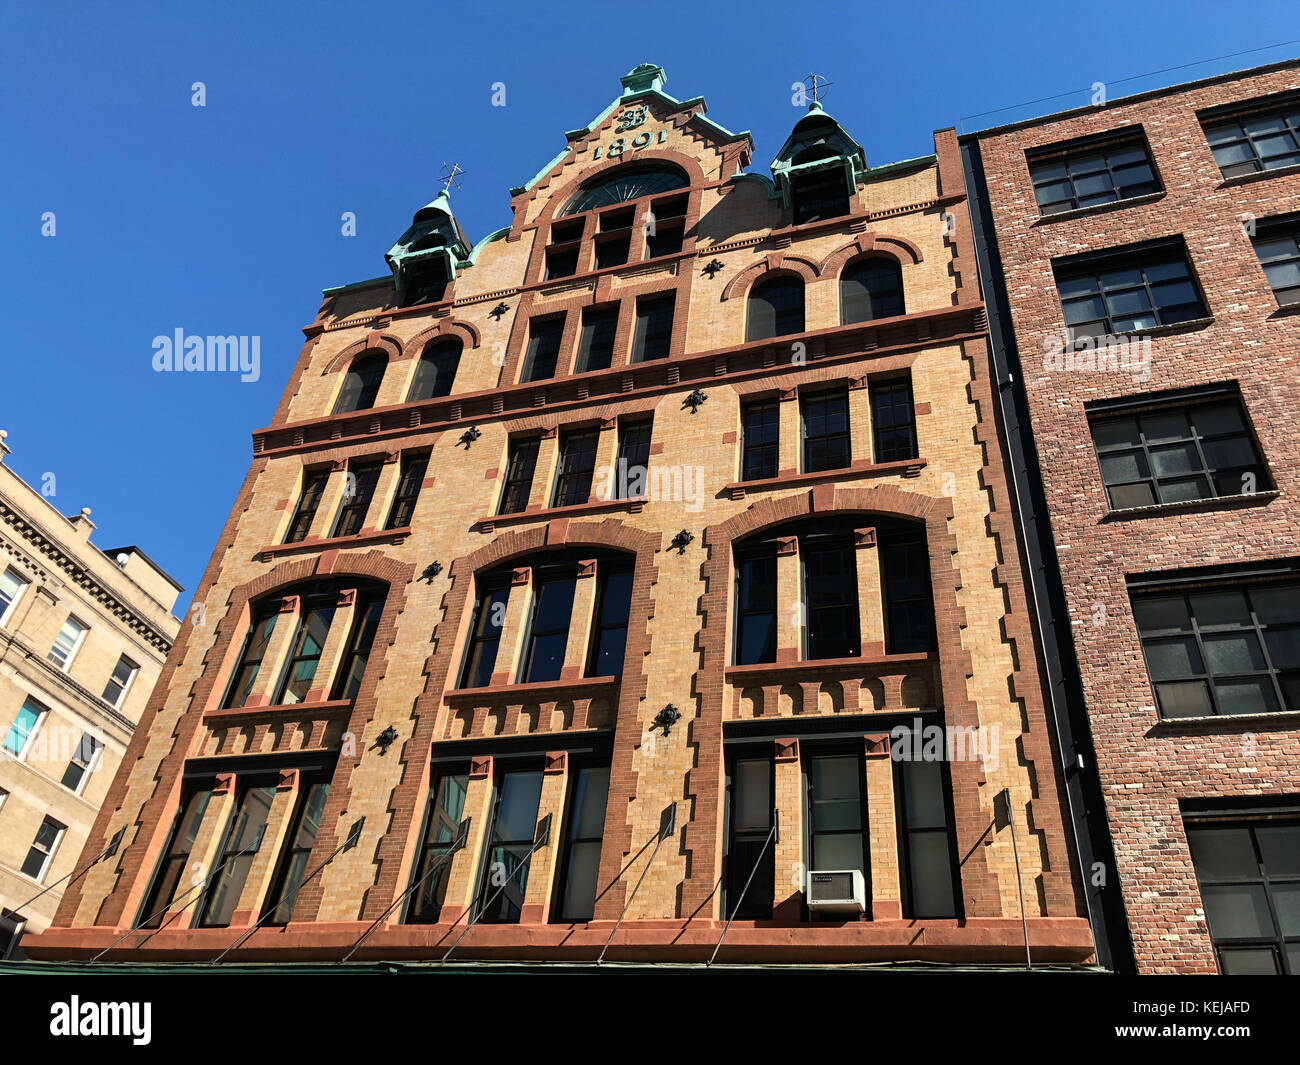 Real-estate developer Fleming Smith built a warehouse in Tribeca in 1891. It was designed by a well-known architect, - Stock Image